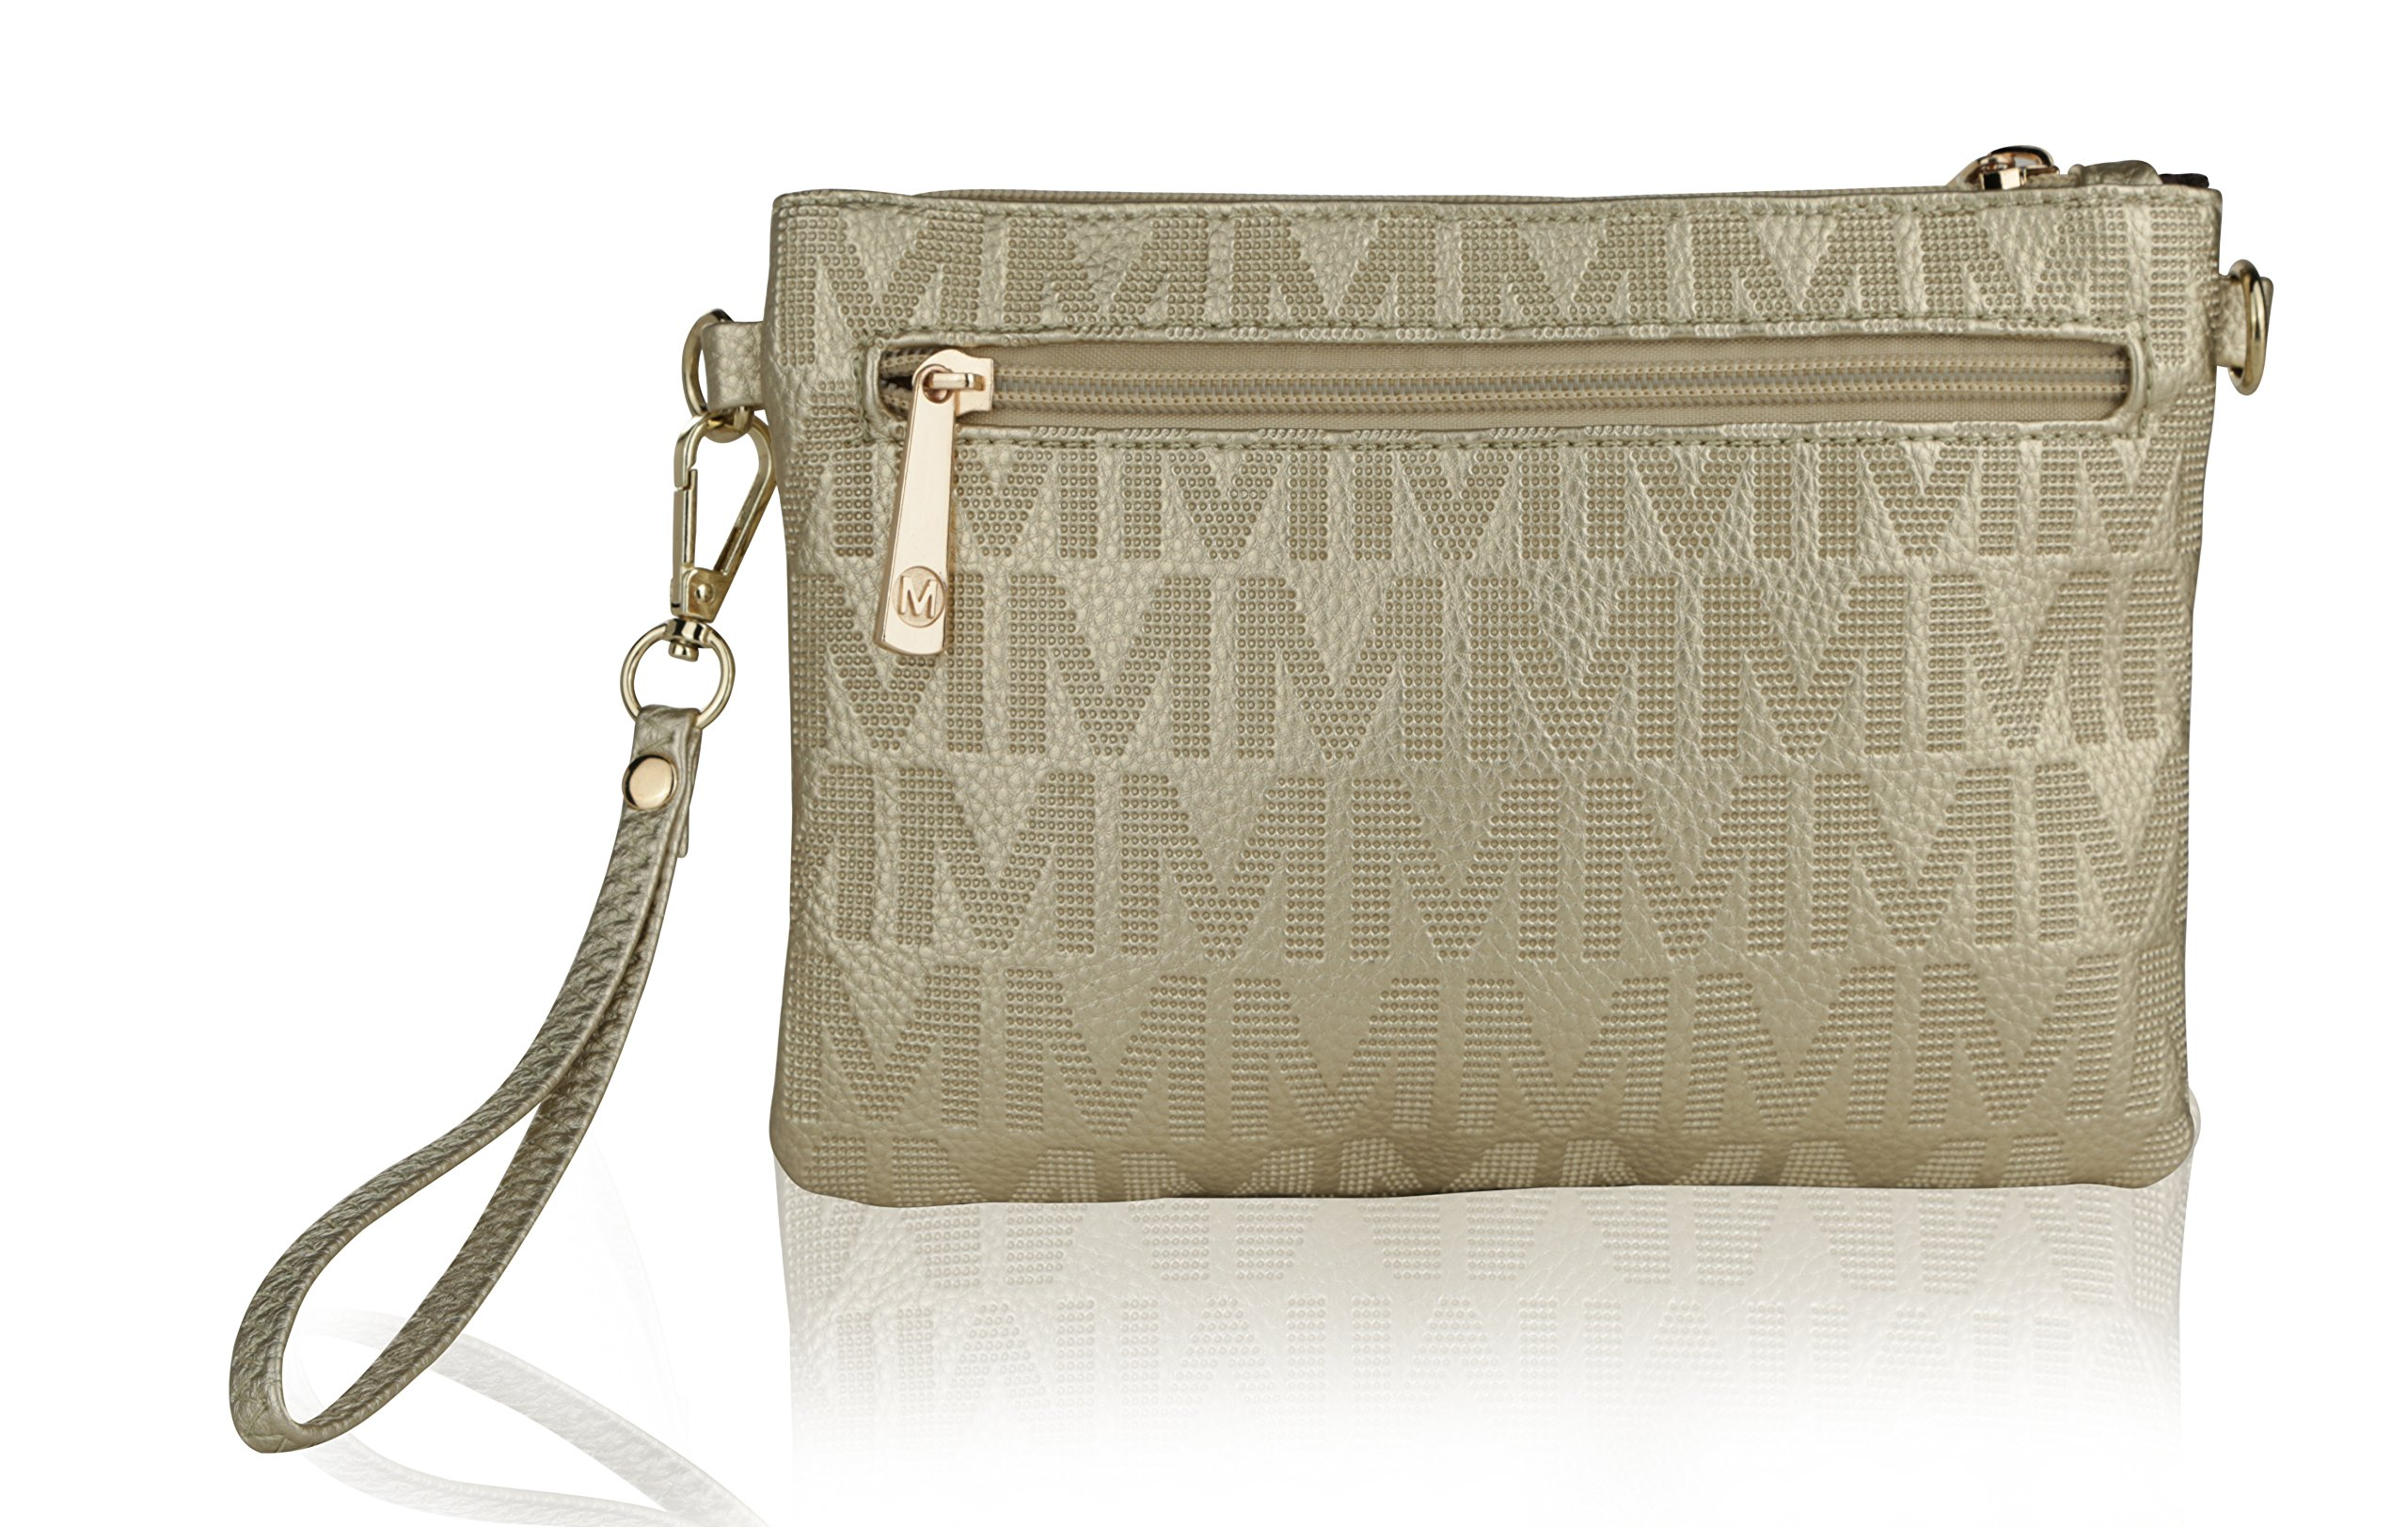 Wristlet | 2-in-1 Crossbody Bags for Women | MKF Collection Roonie Milan Signature Design by MKF Collection (Image #6)